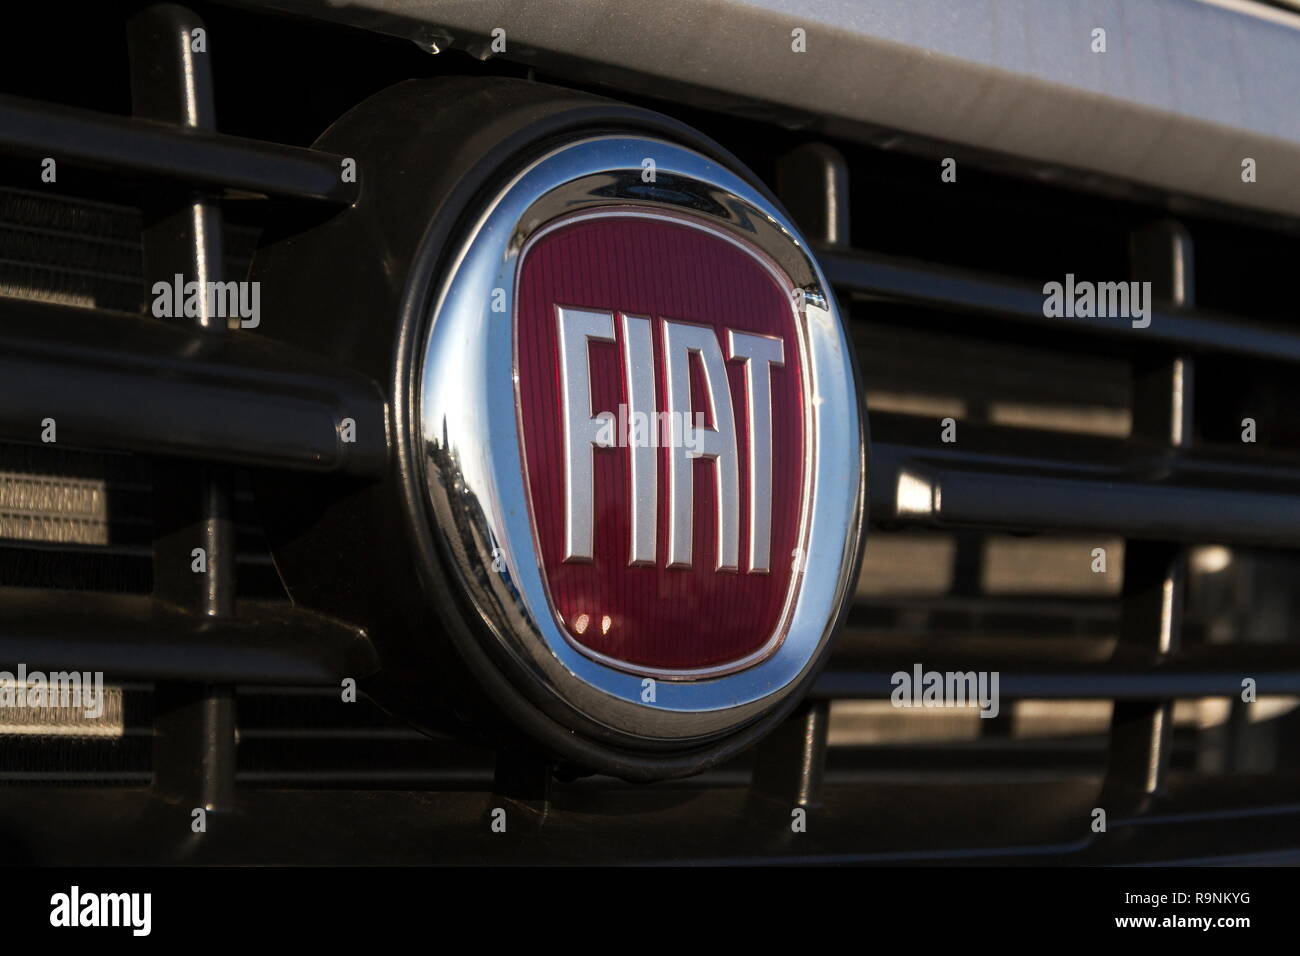 PRAGUE, CZECH REPUBLIC - DECEMBER 13 2018: Fiat automobiles S. p. A. group company logo on car in front of dealership building on December 13, 2018 in Stock Photo